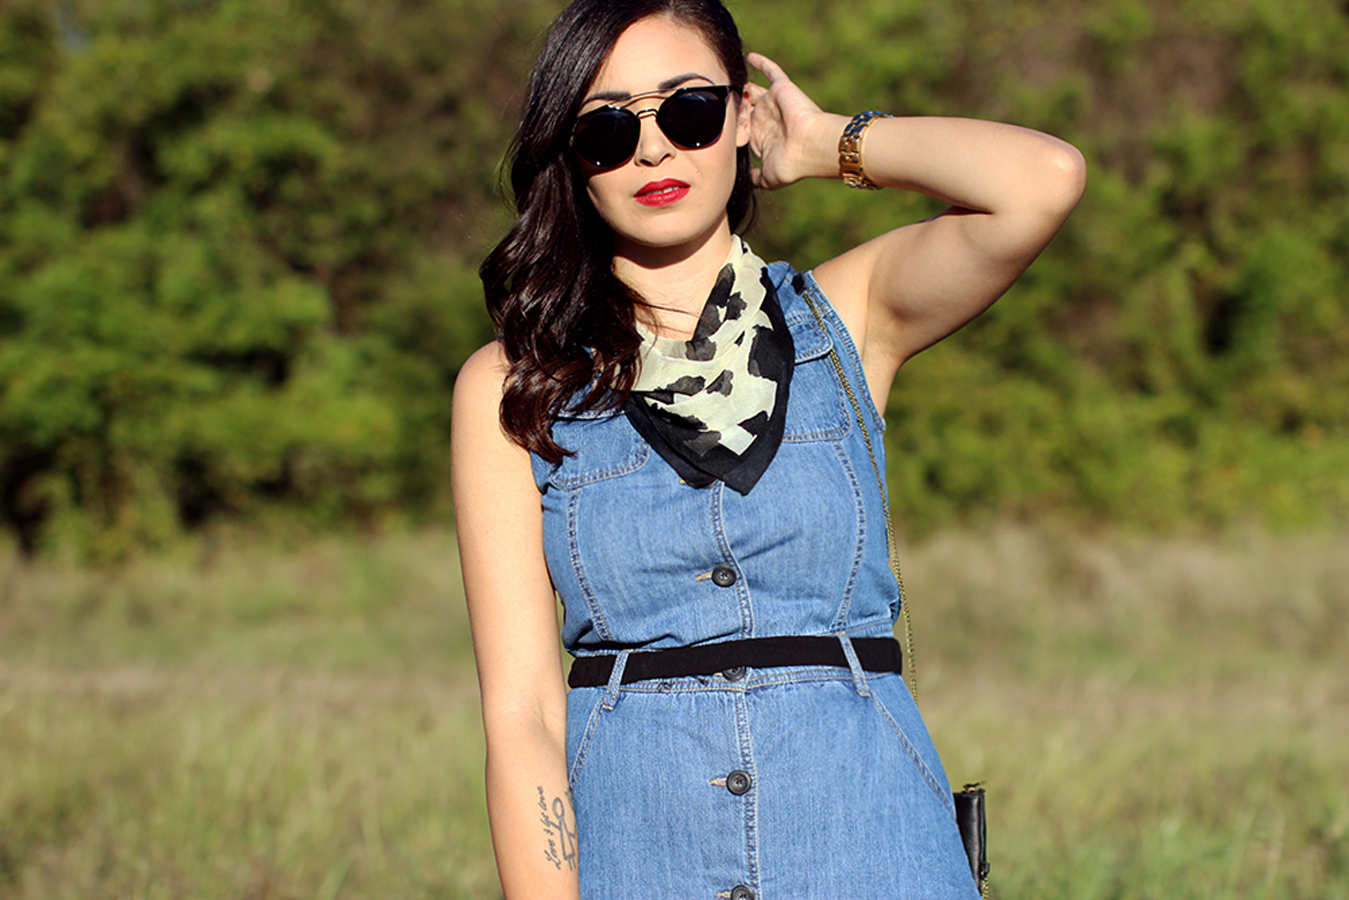 FIXIN-TO-THRILL-PINK-SILVER-FASHION-DENIM-DRESS-STRAPPY-HEELS-TREND-FALL-OCTOBER-ATX-AUSTIN-STYLE-BLOG-FW15-TRENDY-CHIC-GLAM-TEXAS-5